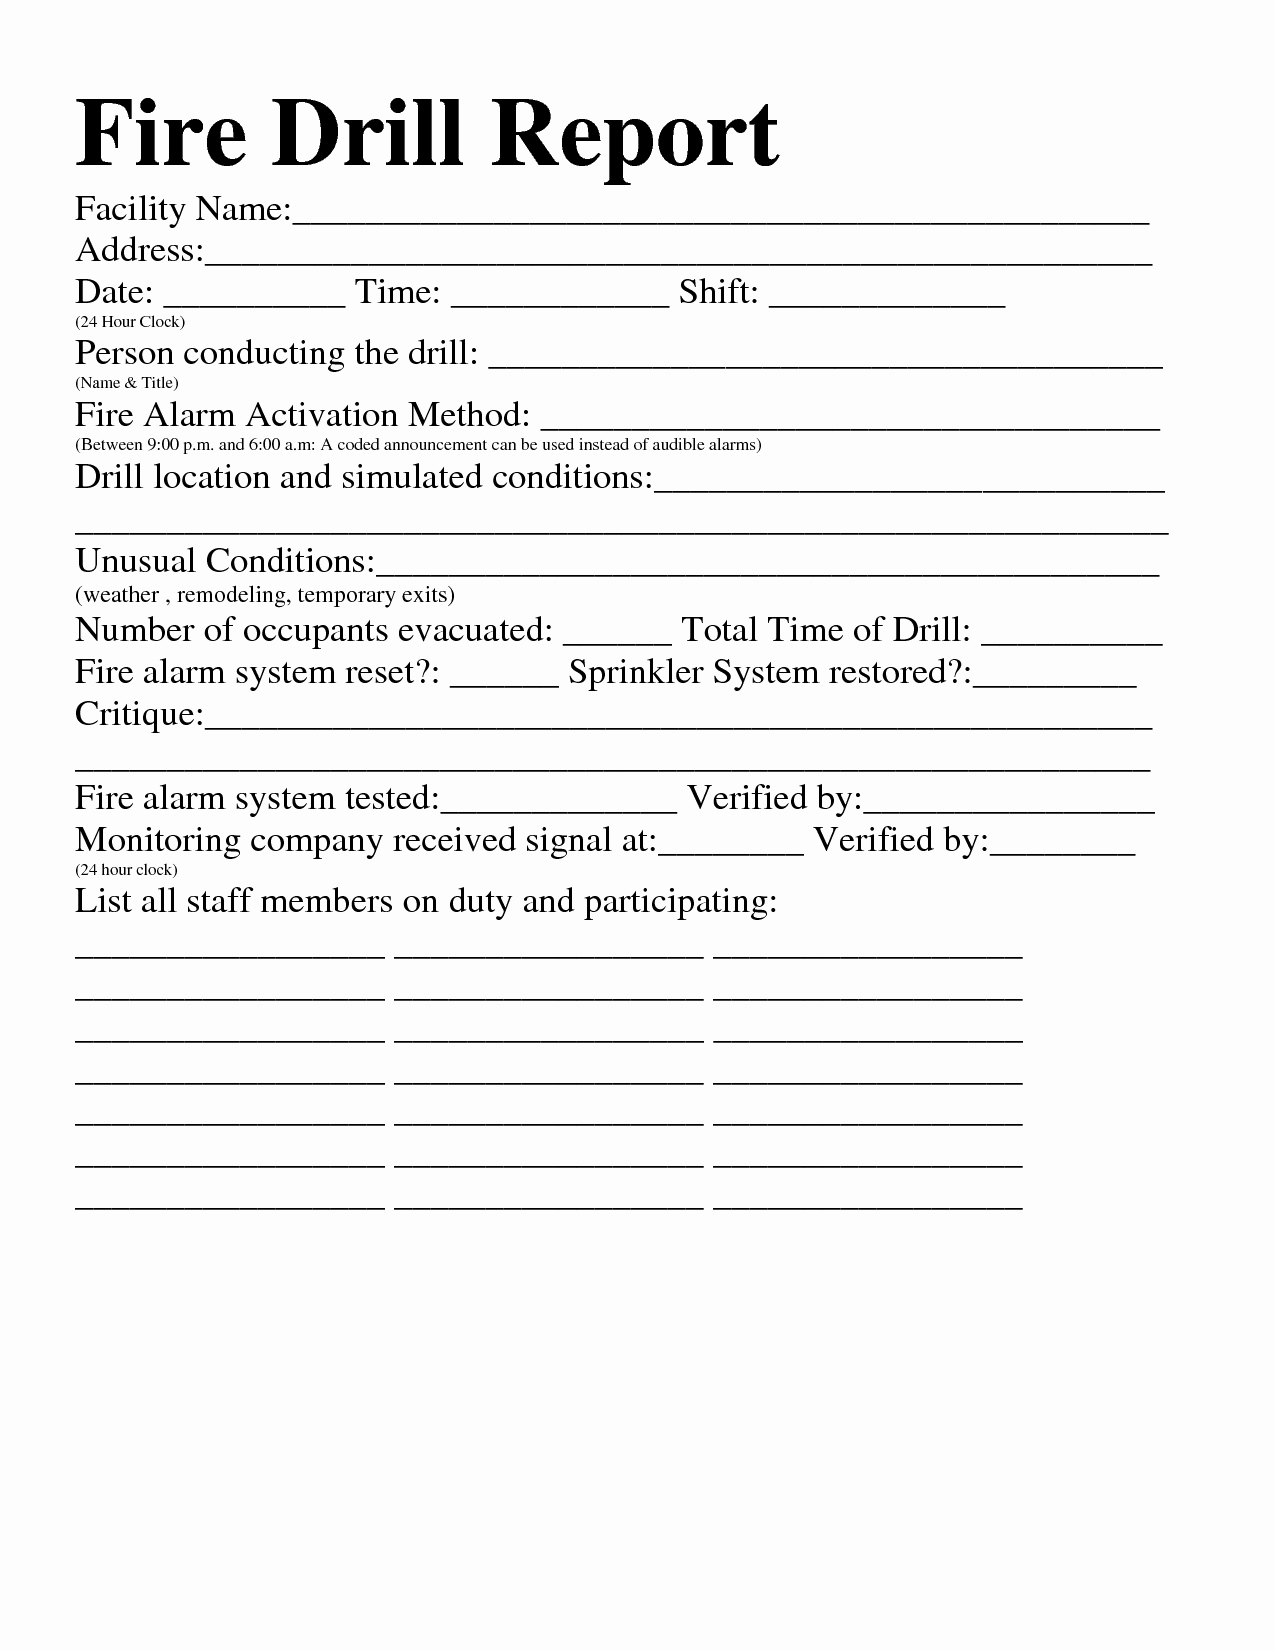 Fire Drill Report Sample New Best S Of Fire Drill Report Fire Drill Report